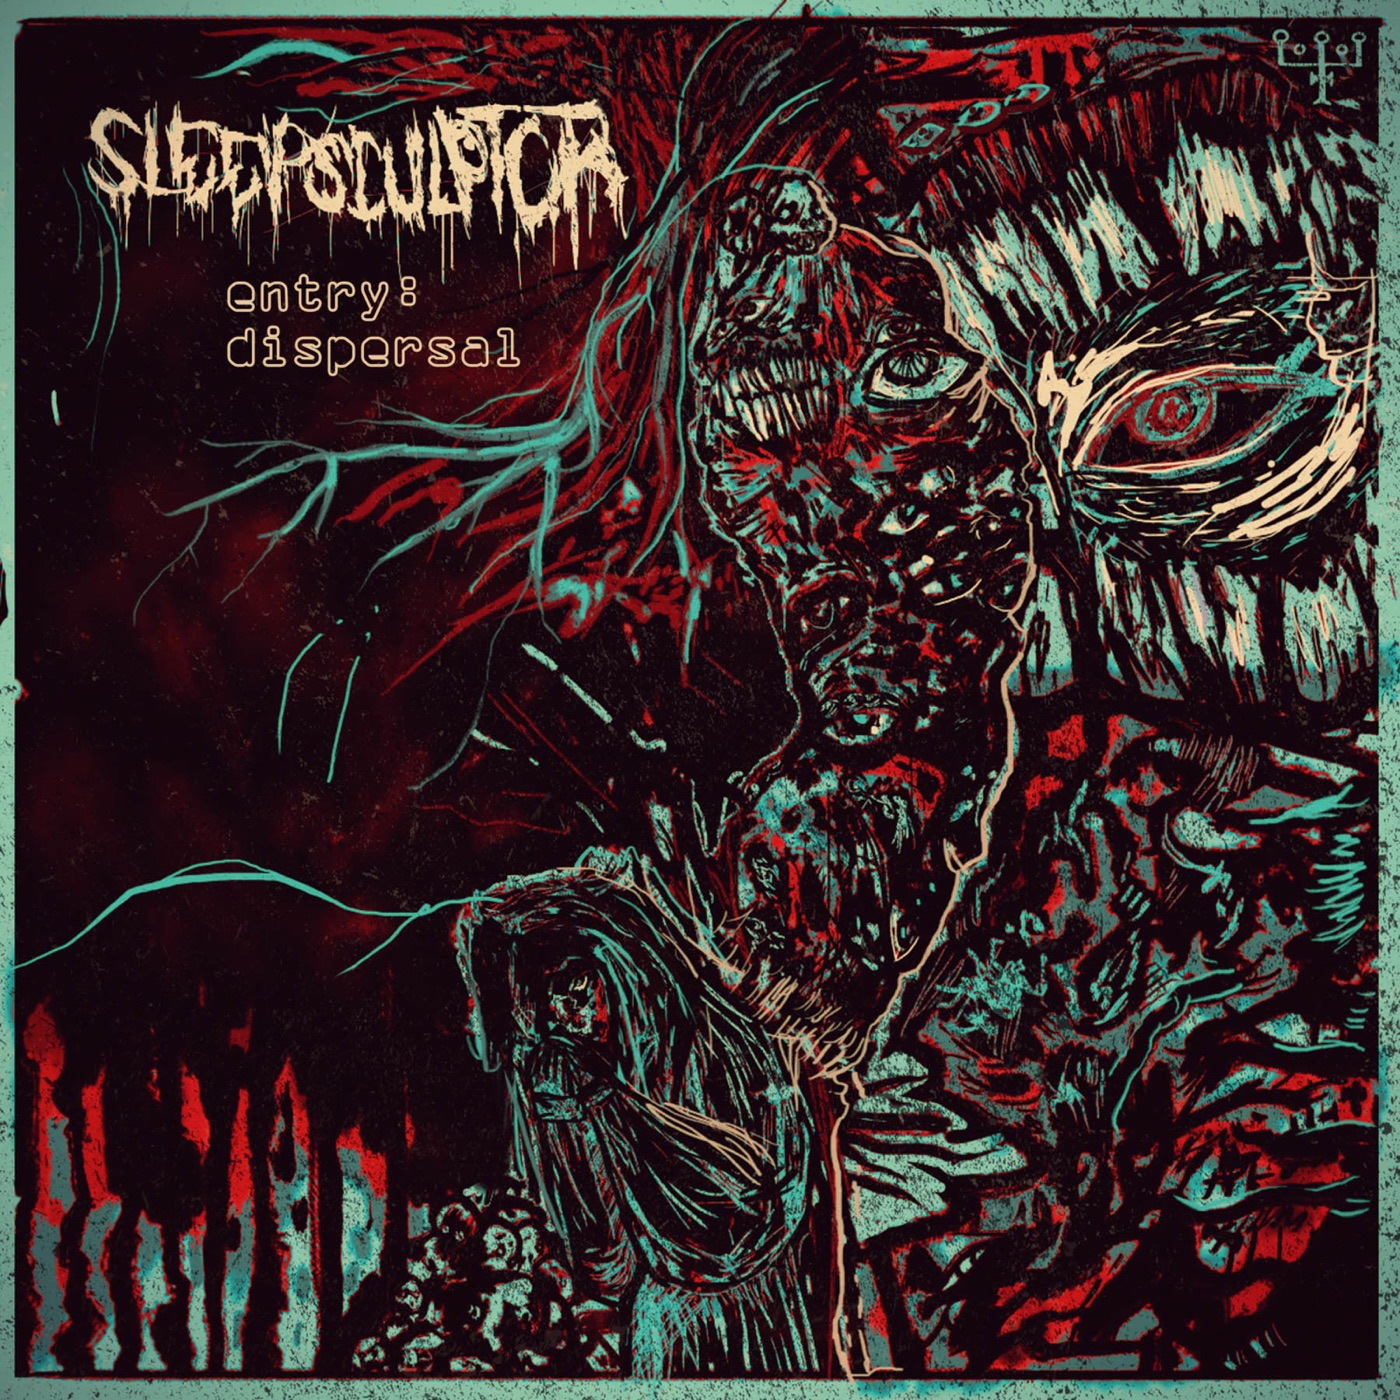 Sleepsculptor - Entry: Dispersal [EP] (2019)